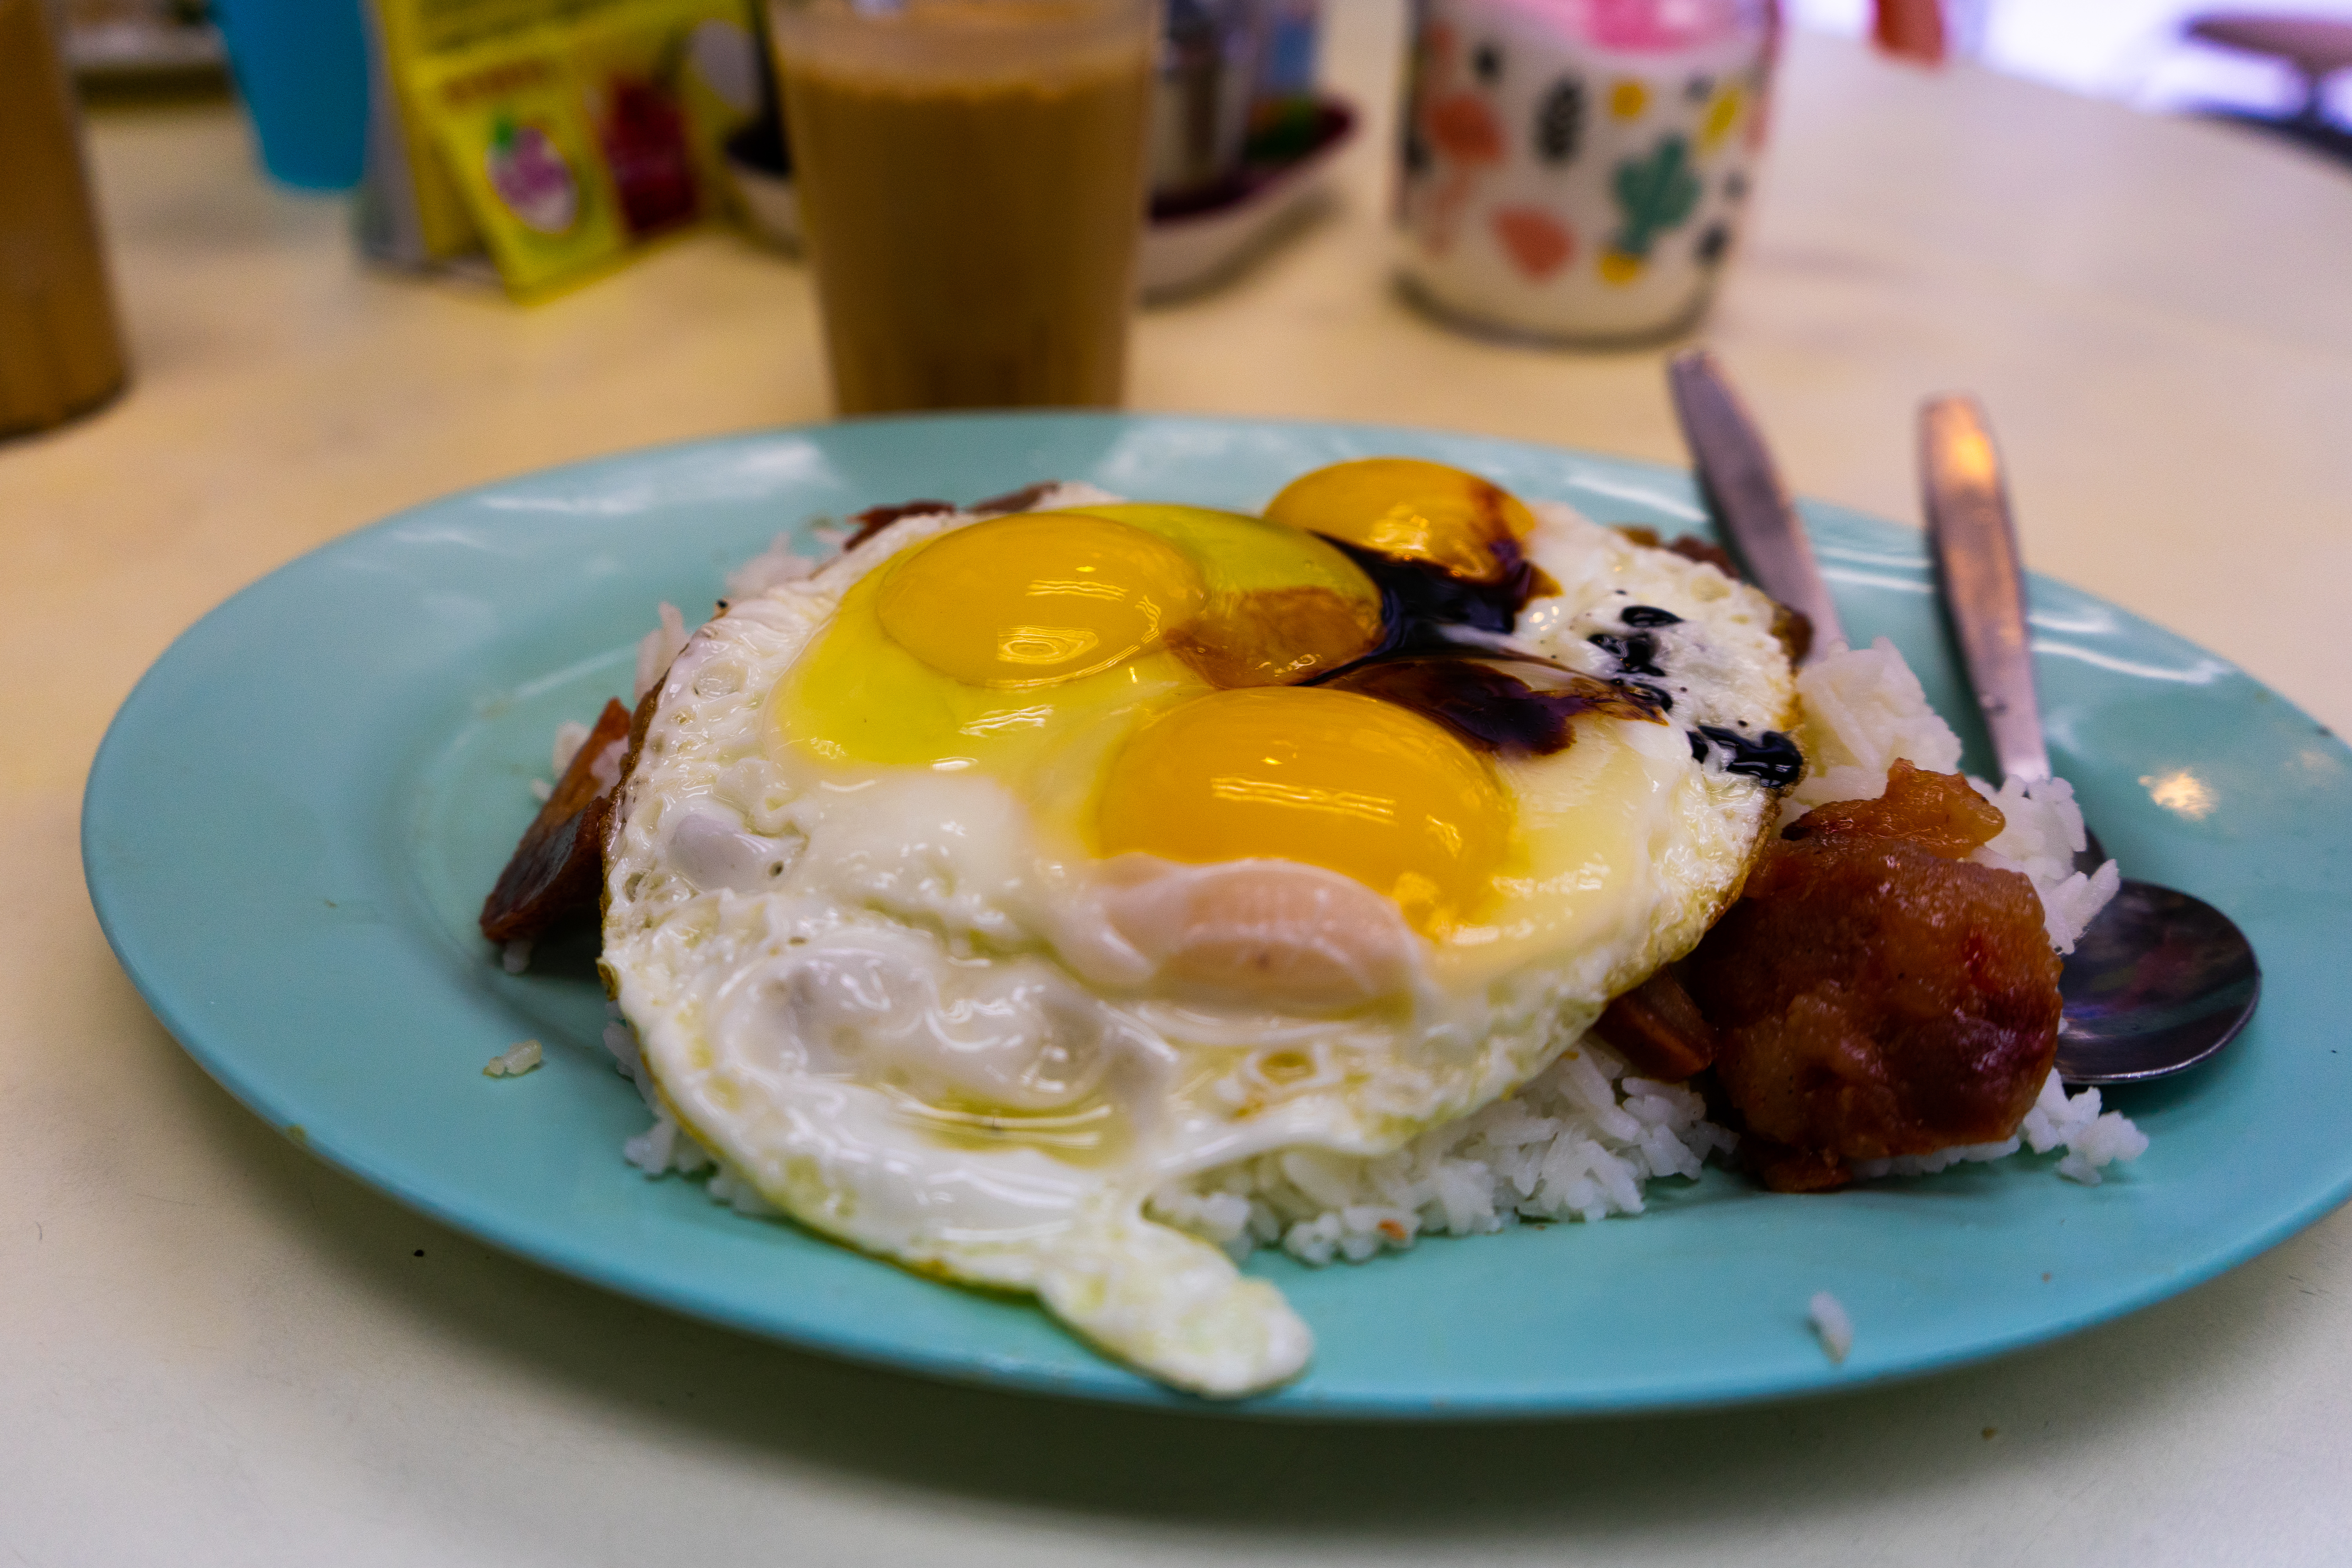 Char Siu and Fried Eggs on rice at Ma Sa Restaurant, one of the best local foods in Sheung Wan, Hong Kong